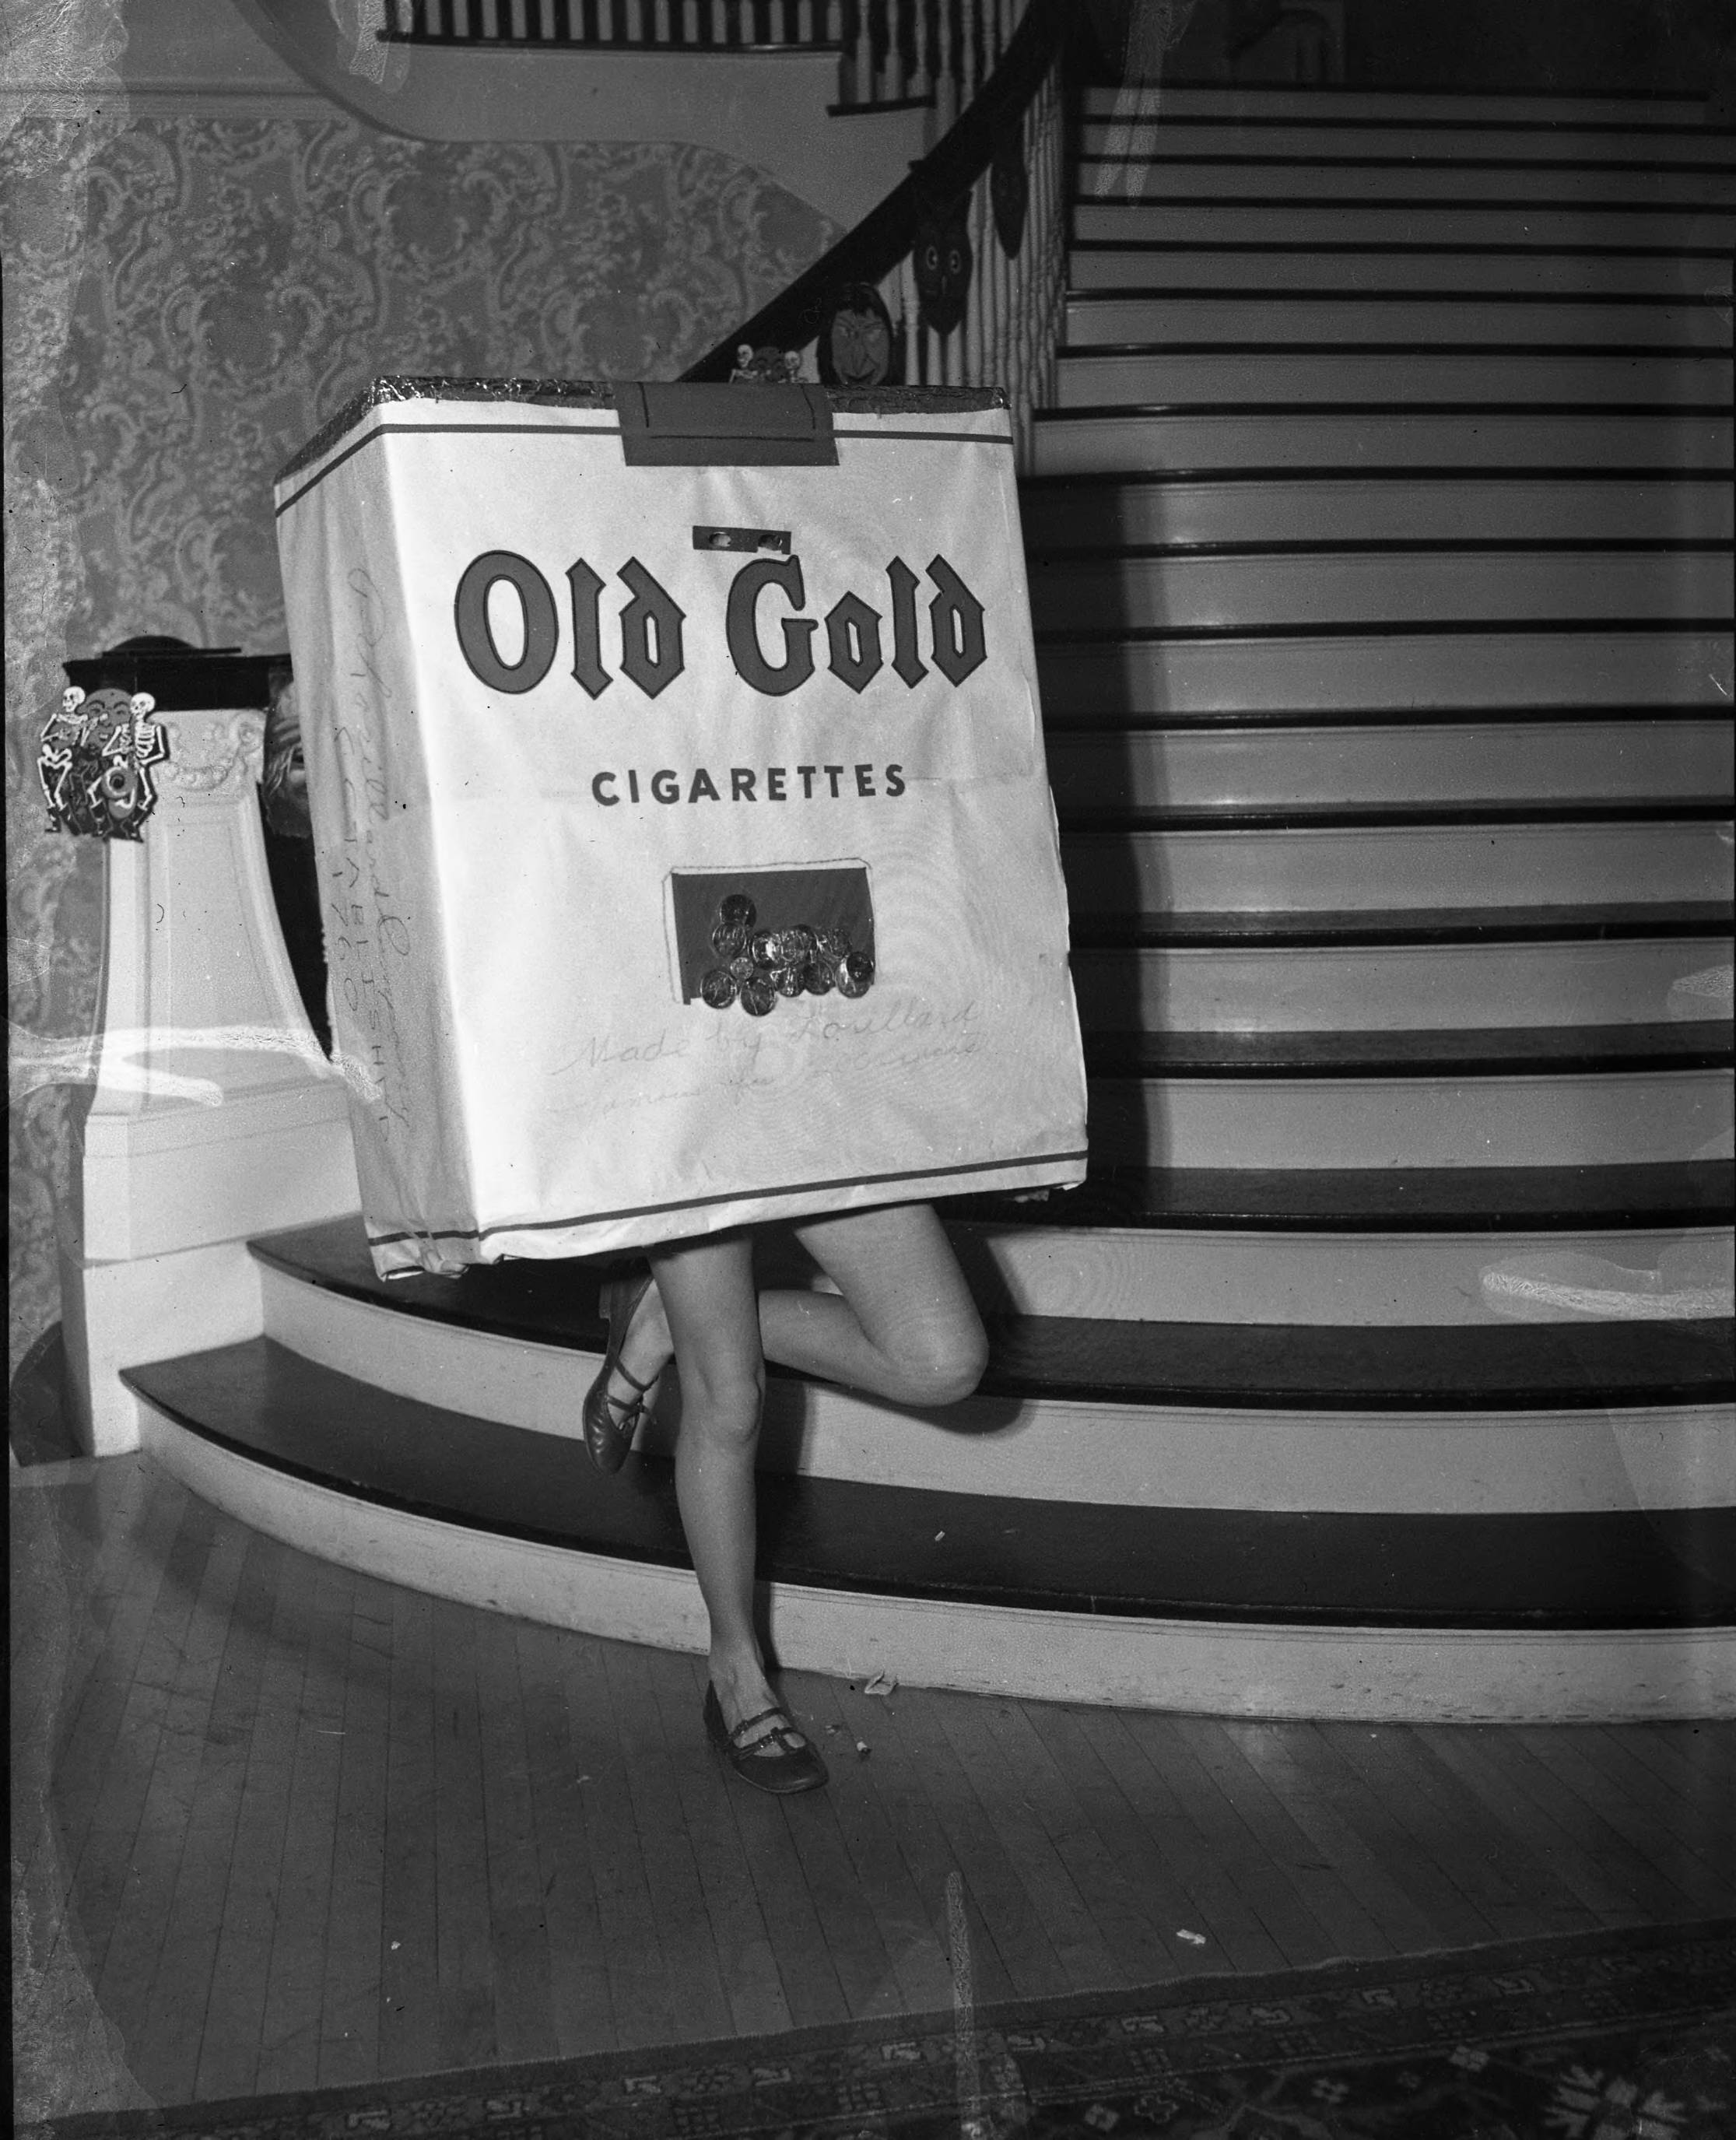 "DescriptionThe Tacoma County and Golf Club held a Halloween party for the children of the members in October of 1951. This unidentifiable young lady, posed at the foot of the club house staircase, came dressed as a dancing cigarette pack. Old Gold's dancing cigarette packs first appeared on television in the late 1940s. By 1951 they were so well known and popular with the public that they were ""TV stars"" even though the dancers inside the boxes were faceless and ""bodyless""."